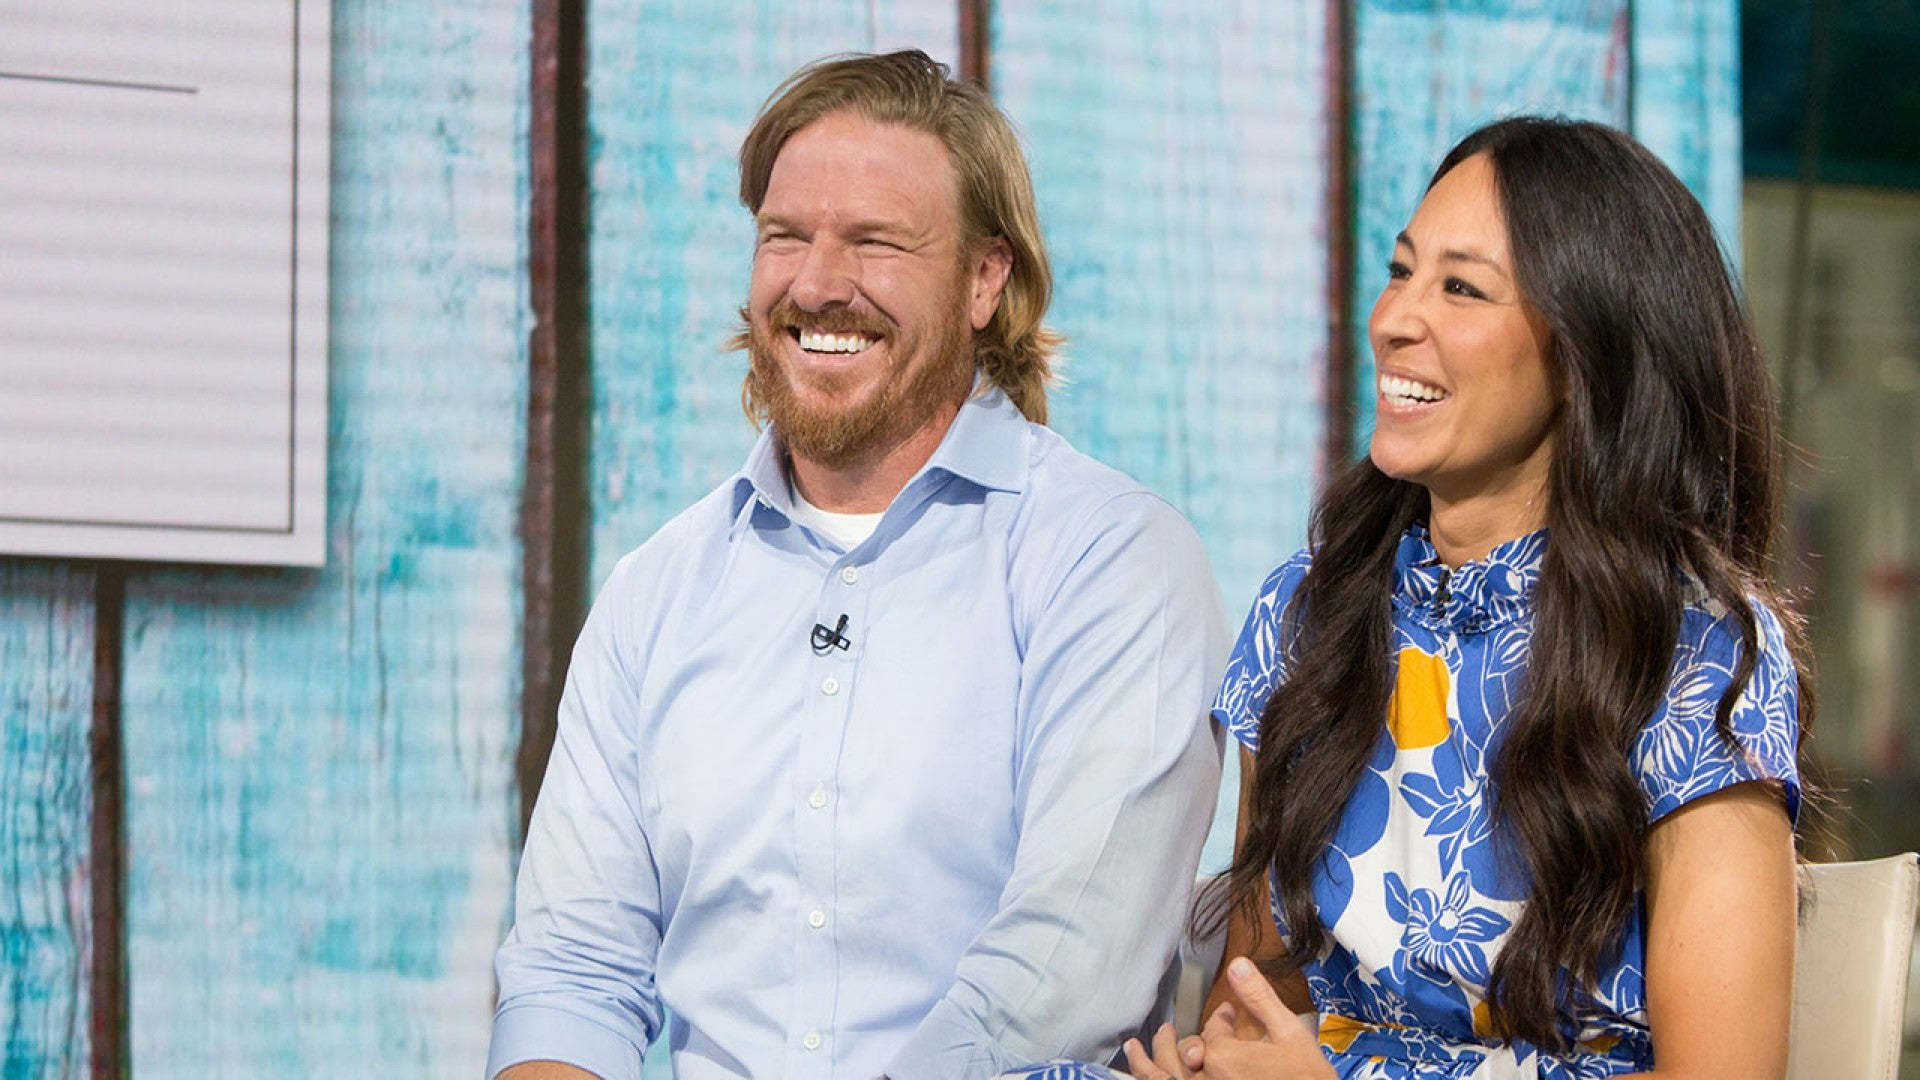 Chips Et Joanna Gaines chip and joanna gaines announce that 'fixer upper' will end